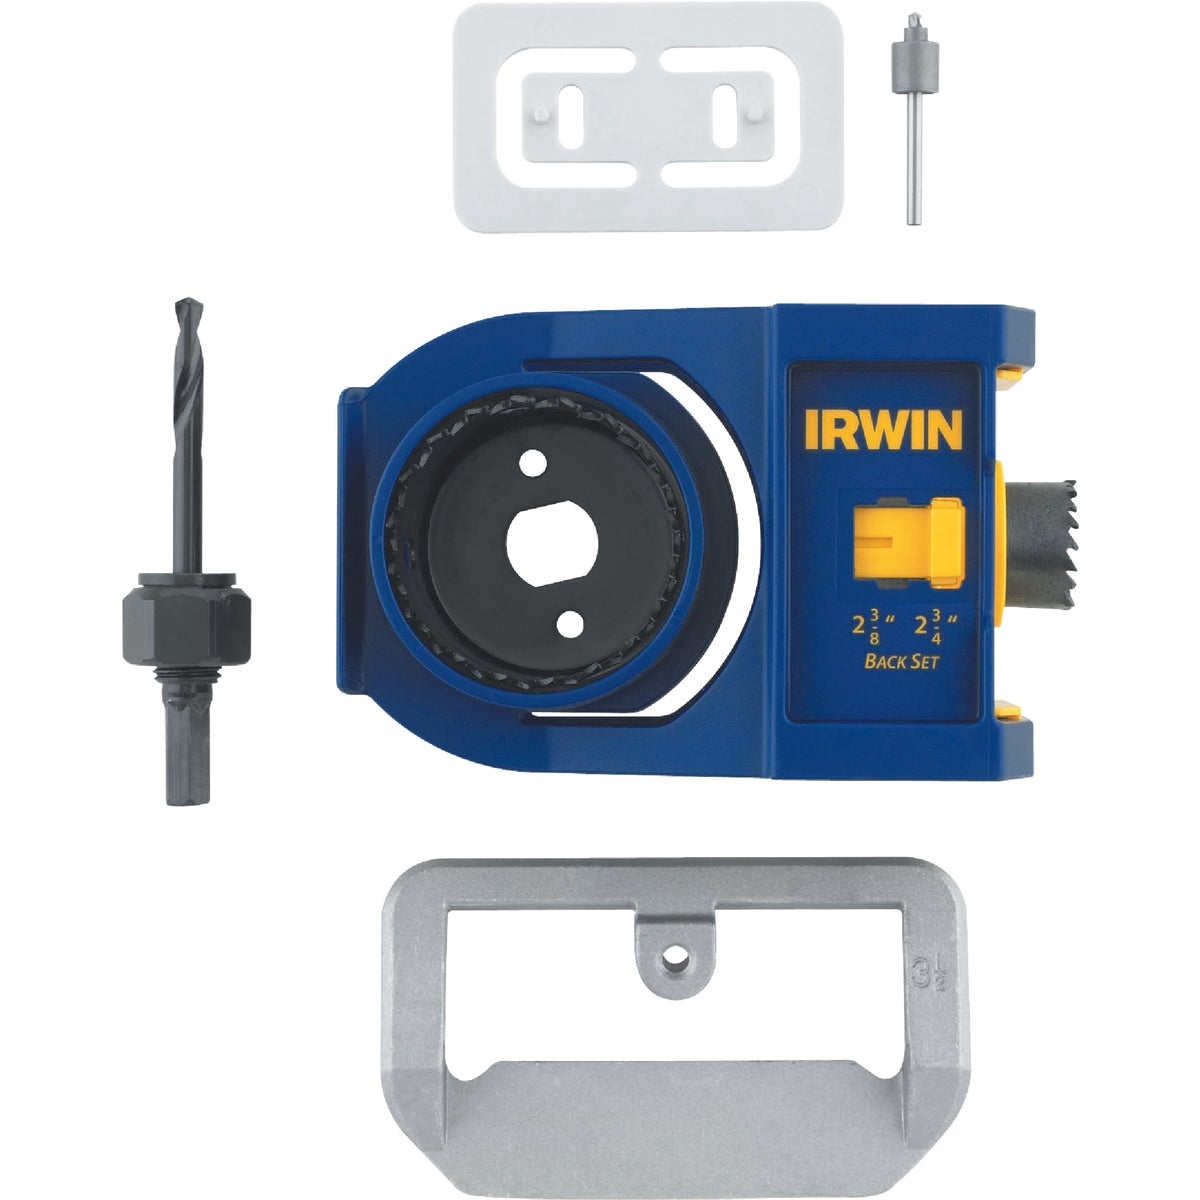 CRBN DR LOCK INSTALL KIT - 3111001 by Irwin Industr Tool